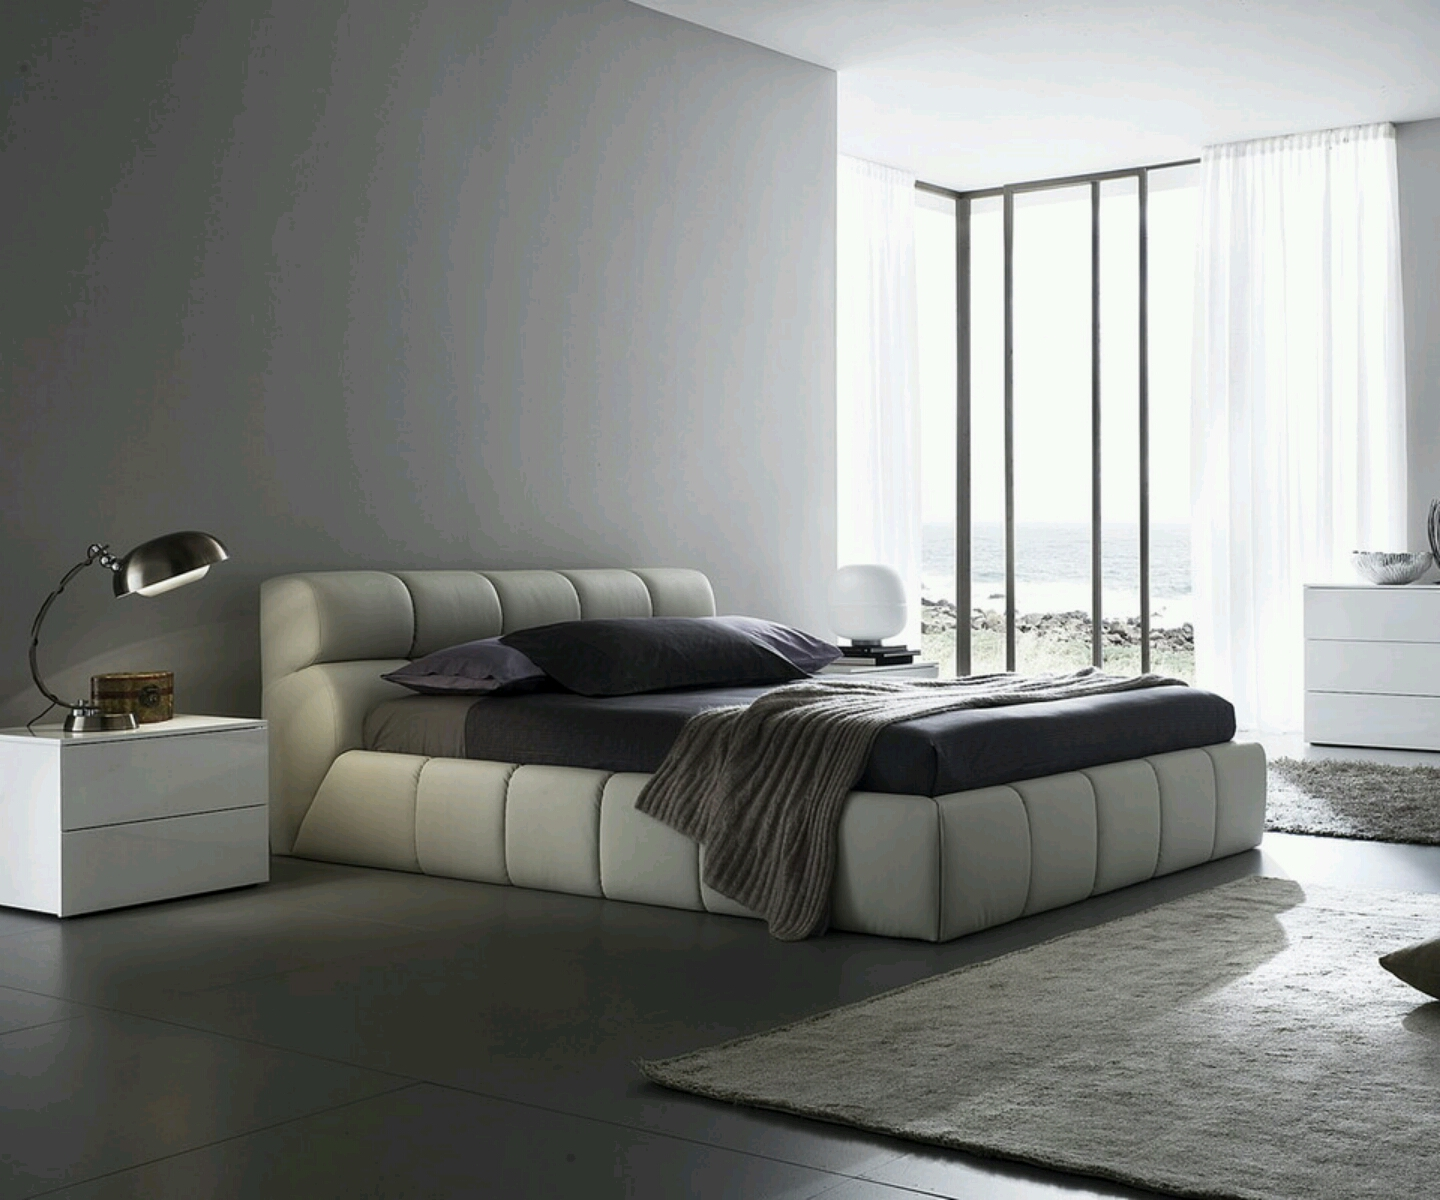 modern furniture modern bed designs beautiful bedrooms On bedroom bed design